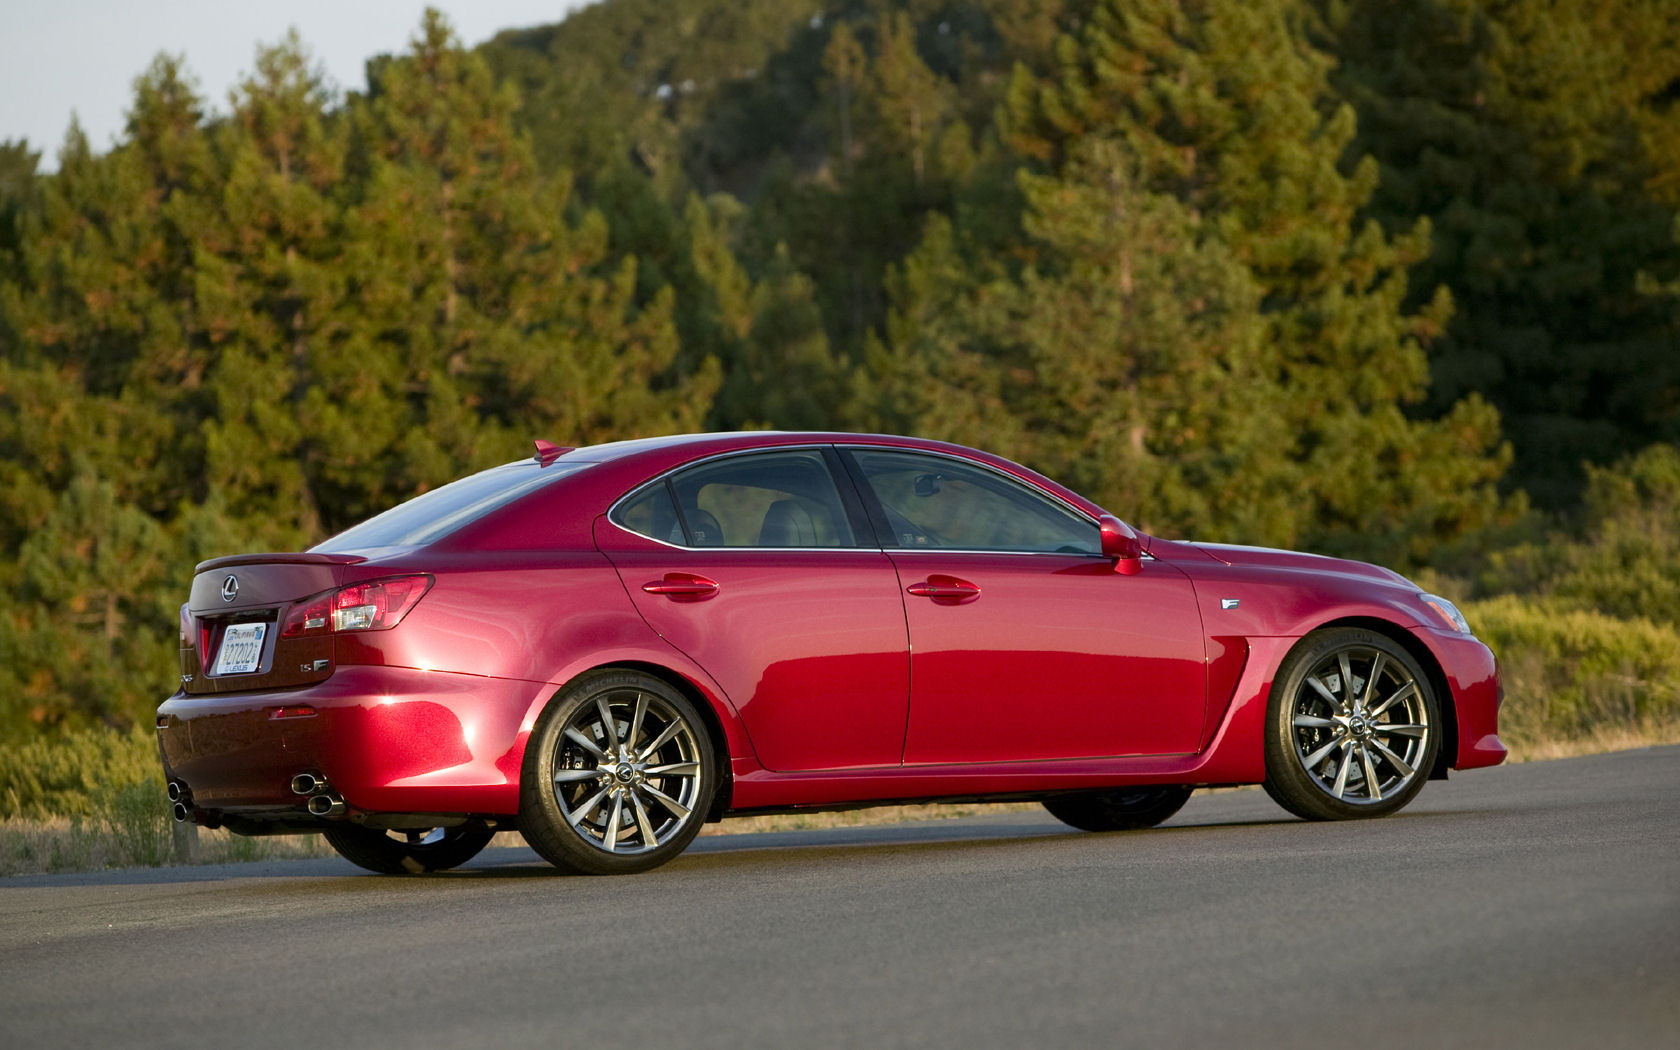 Lexus IS 250, 350, 250C, 350C, IS-F - Free Widescreen ...